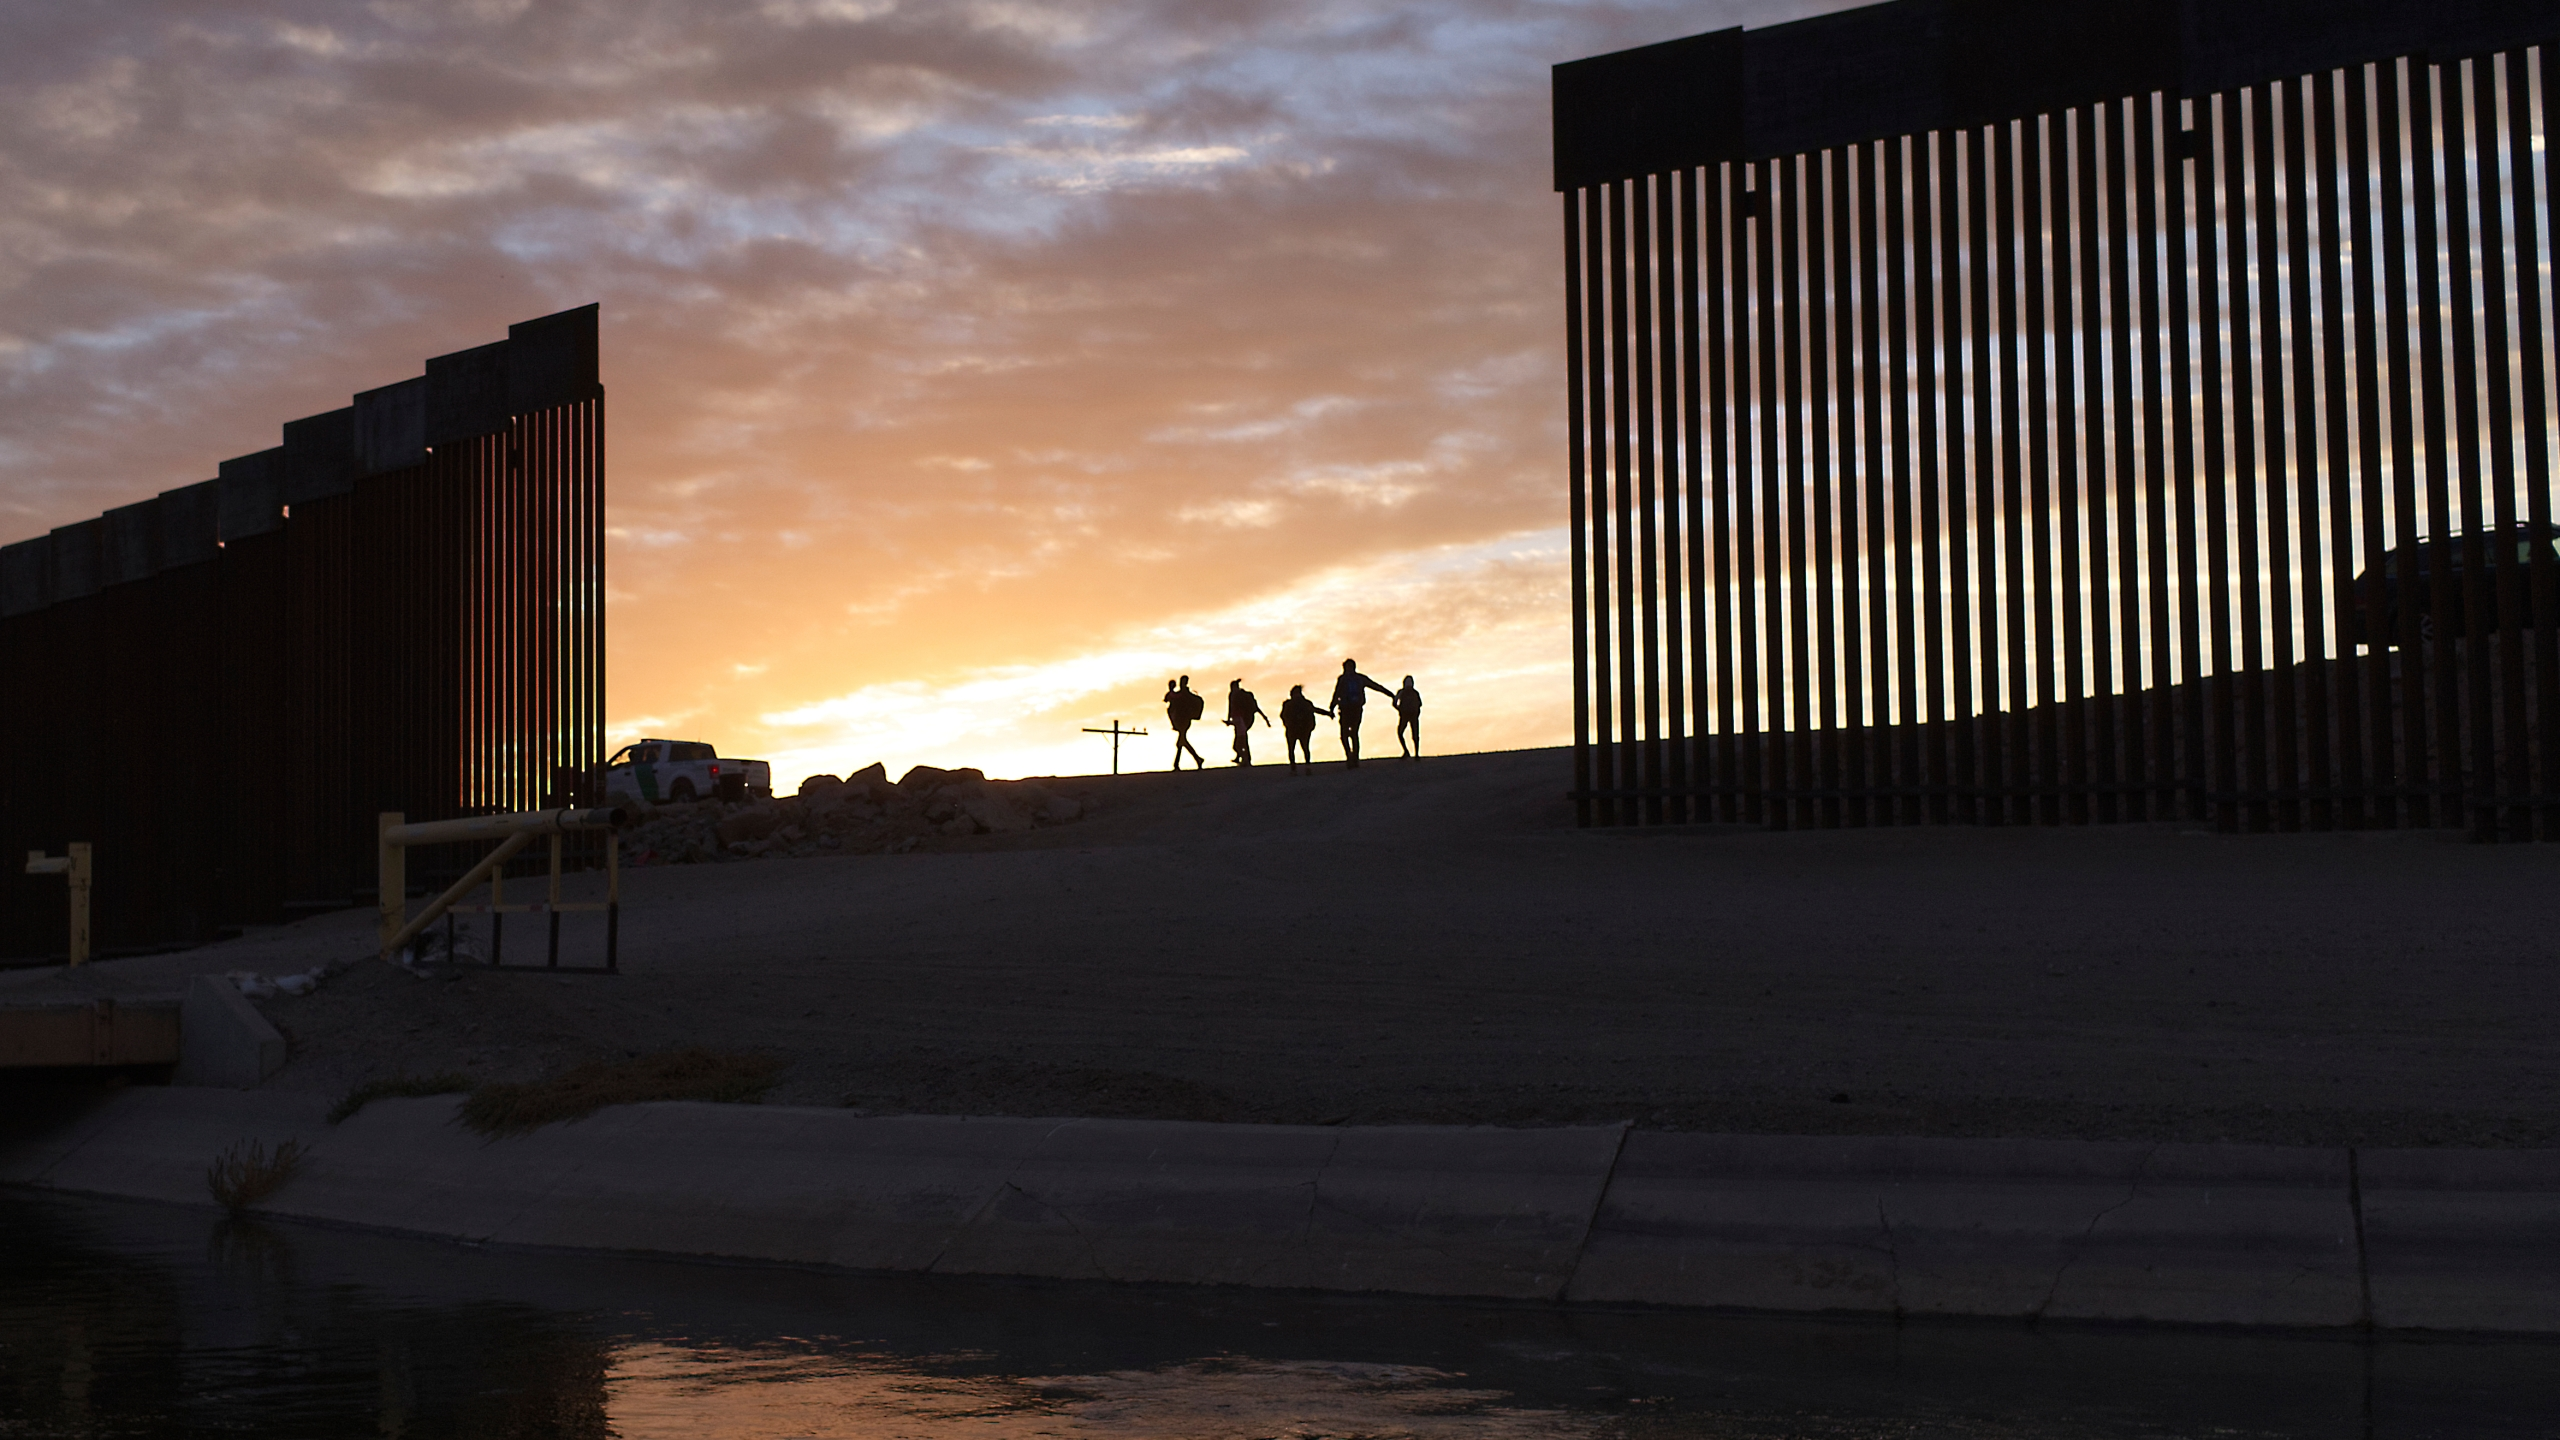 In this June 10, 2021, file photo, a pair of migrant families from Brazil pass through a gap in the border wall to reach the United States after crossing from Mexico to Yuma, Ariz., to seek asylum. (AP Photo/Eugene Garcia, File)